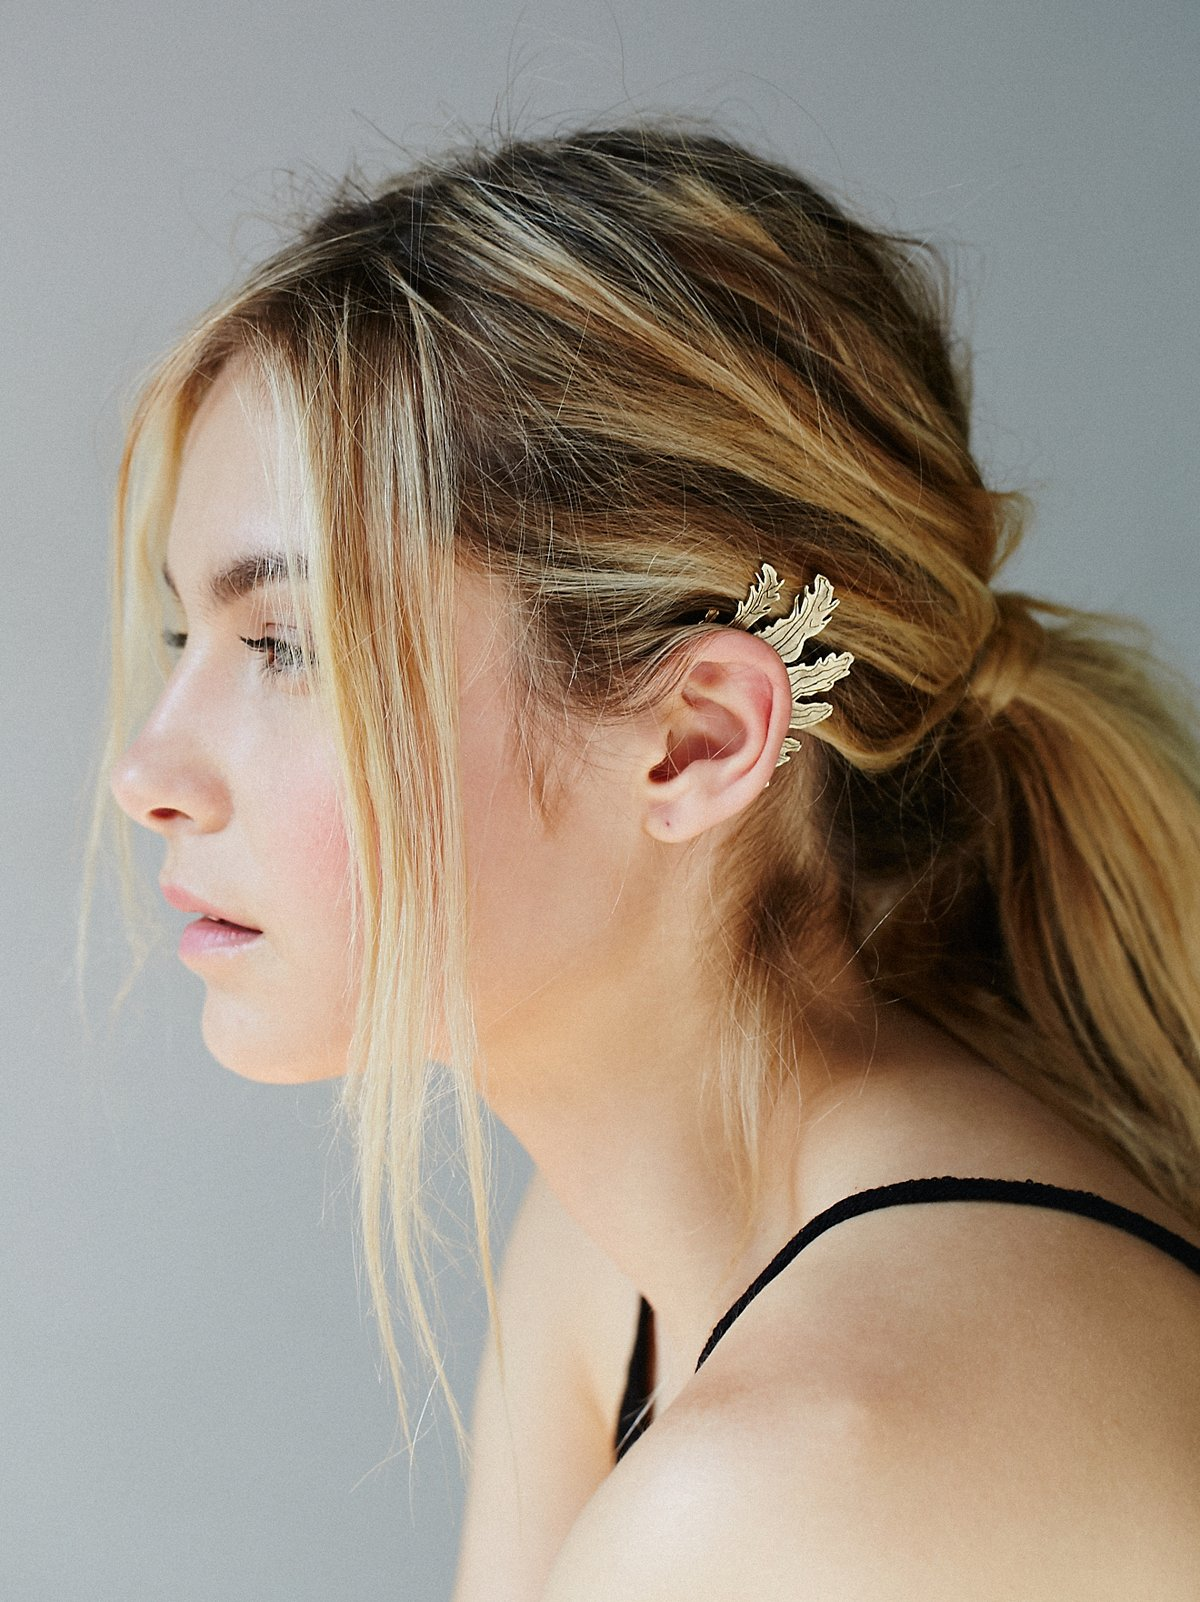 Teen Spirit Ear Cuff